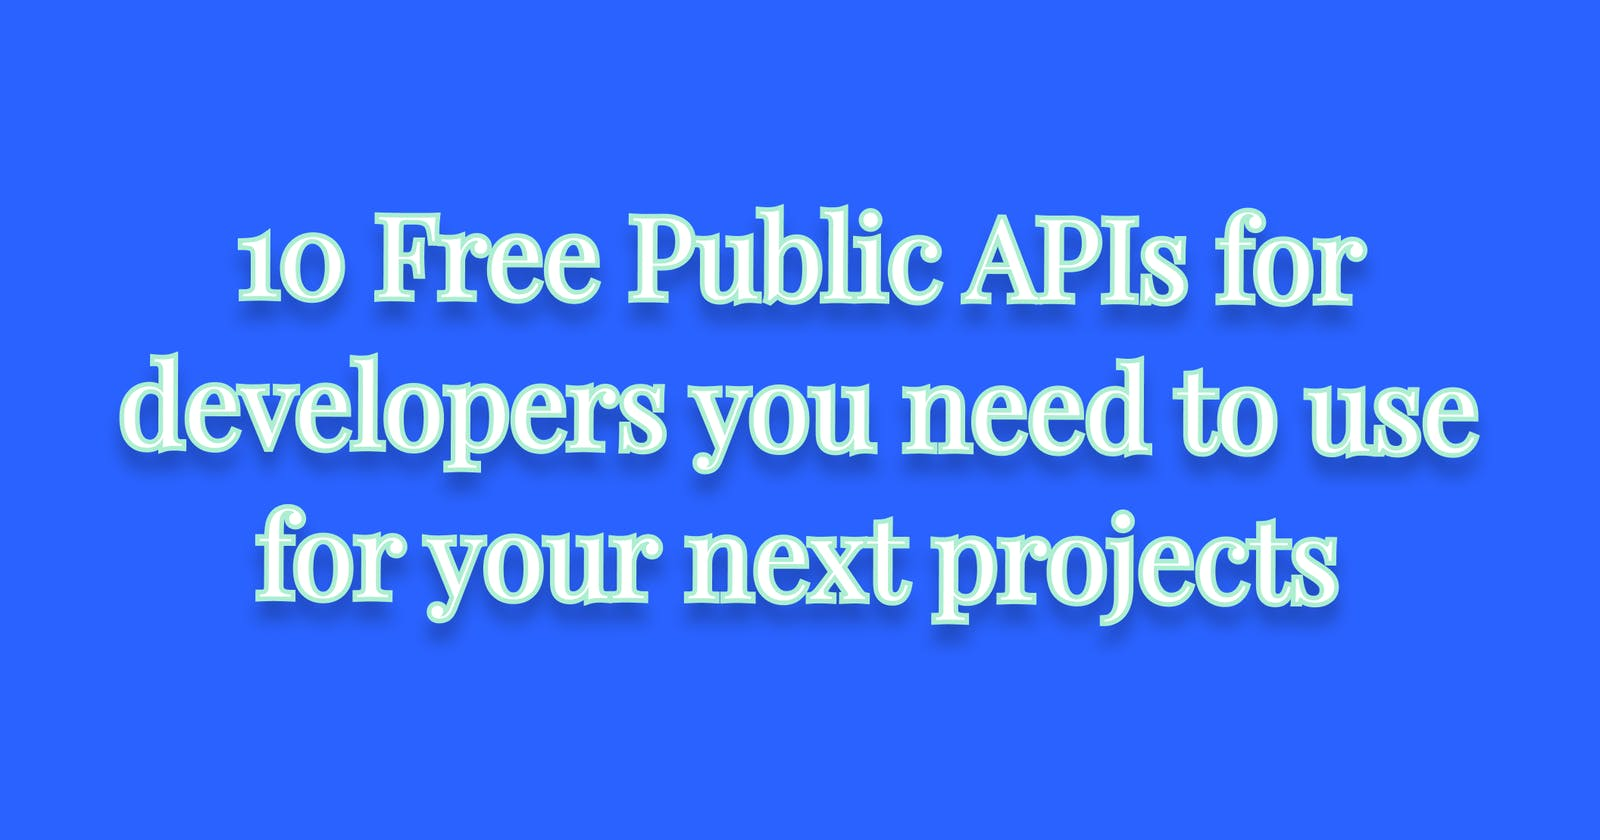 10 Free Public APIs for developers you need to use for your next projects